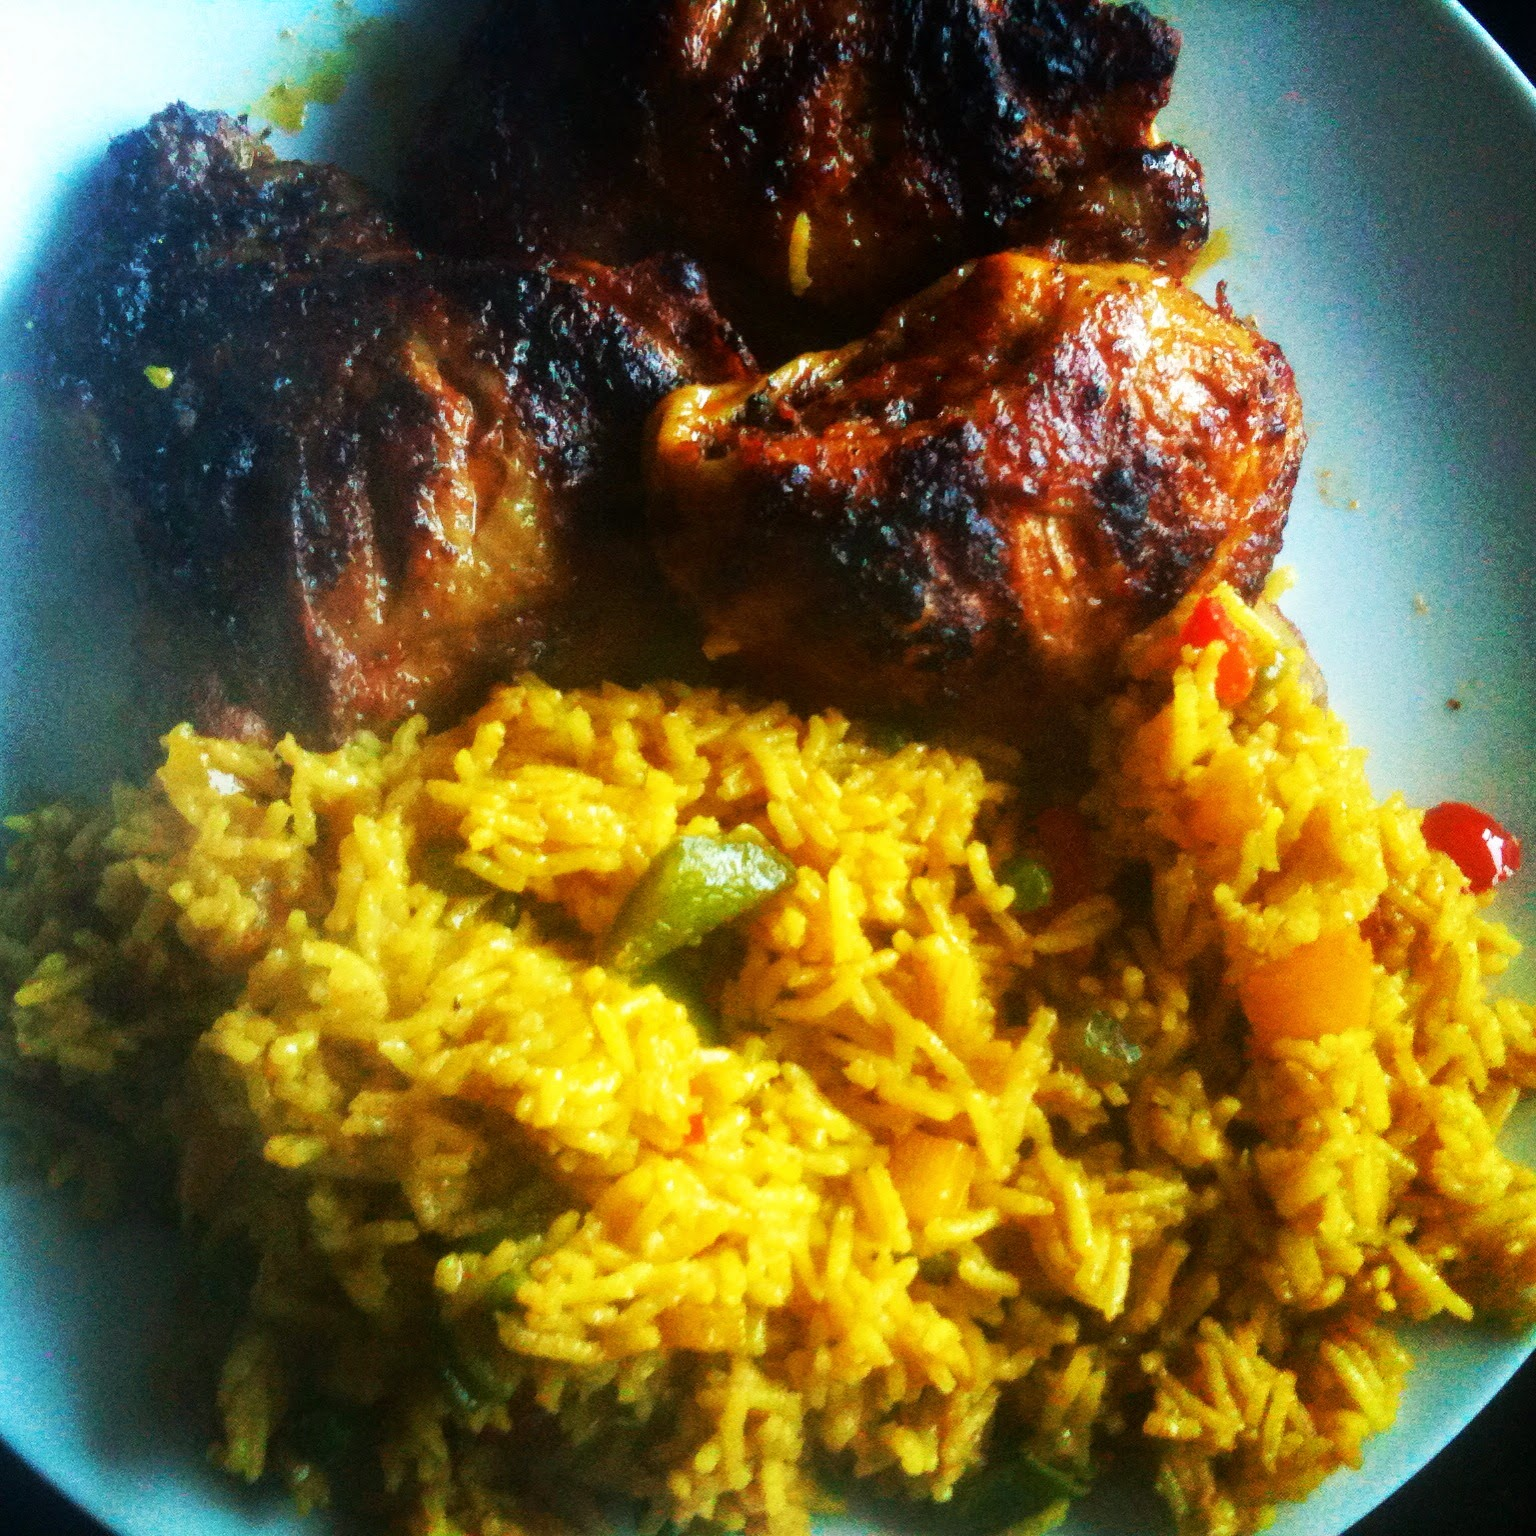 Dinner of peri peri chicken and rice is served